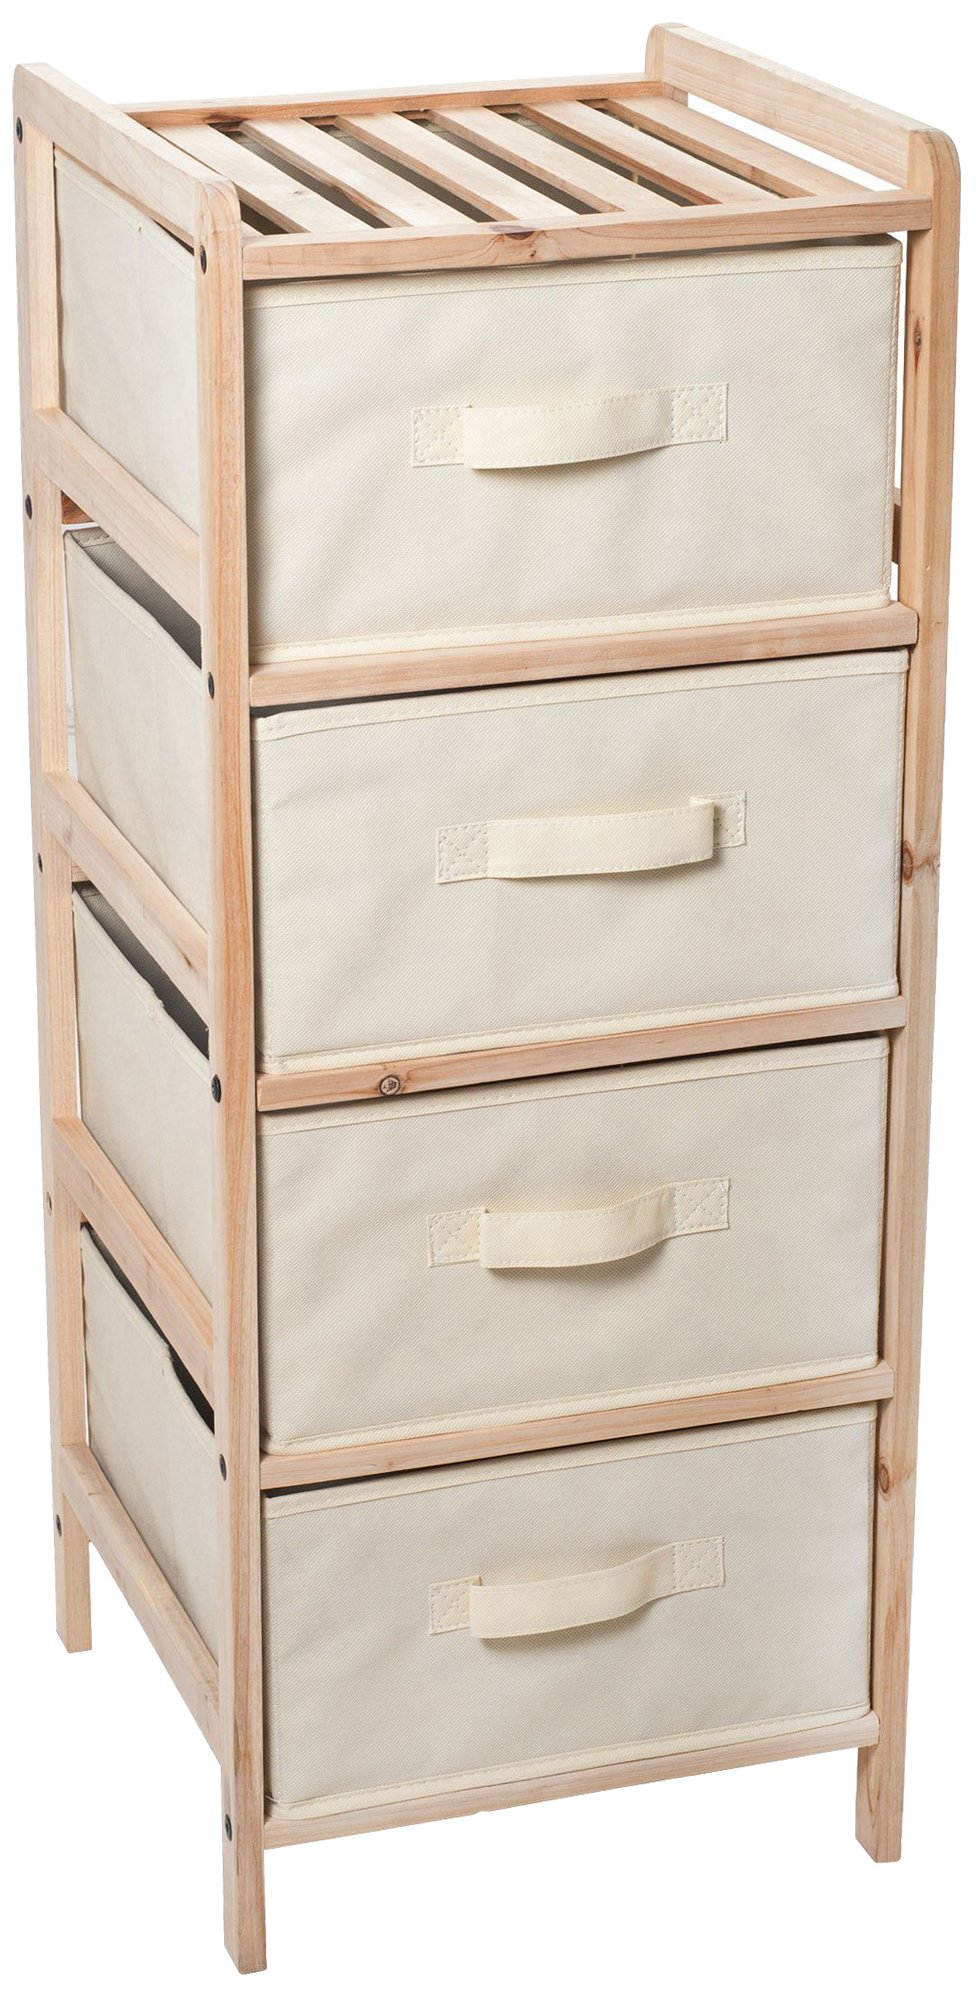 Lavish Home Organization Drawers with Natural Wood Shelf and Four Fabric Storage Bins- Lightweight and Perfect for Dorms, Bathrooms or Bedrooms by Lavish Home